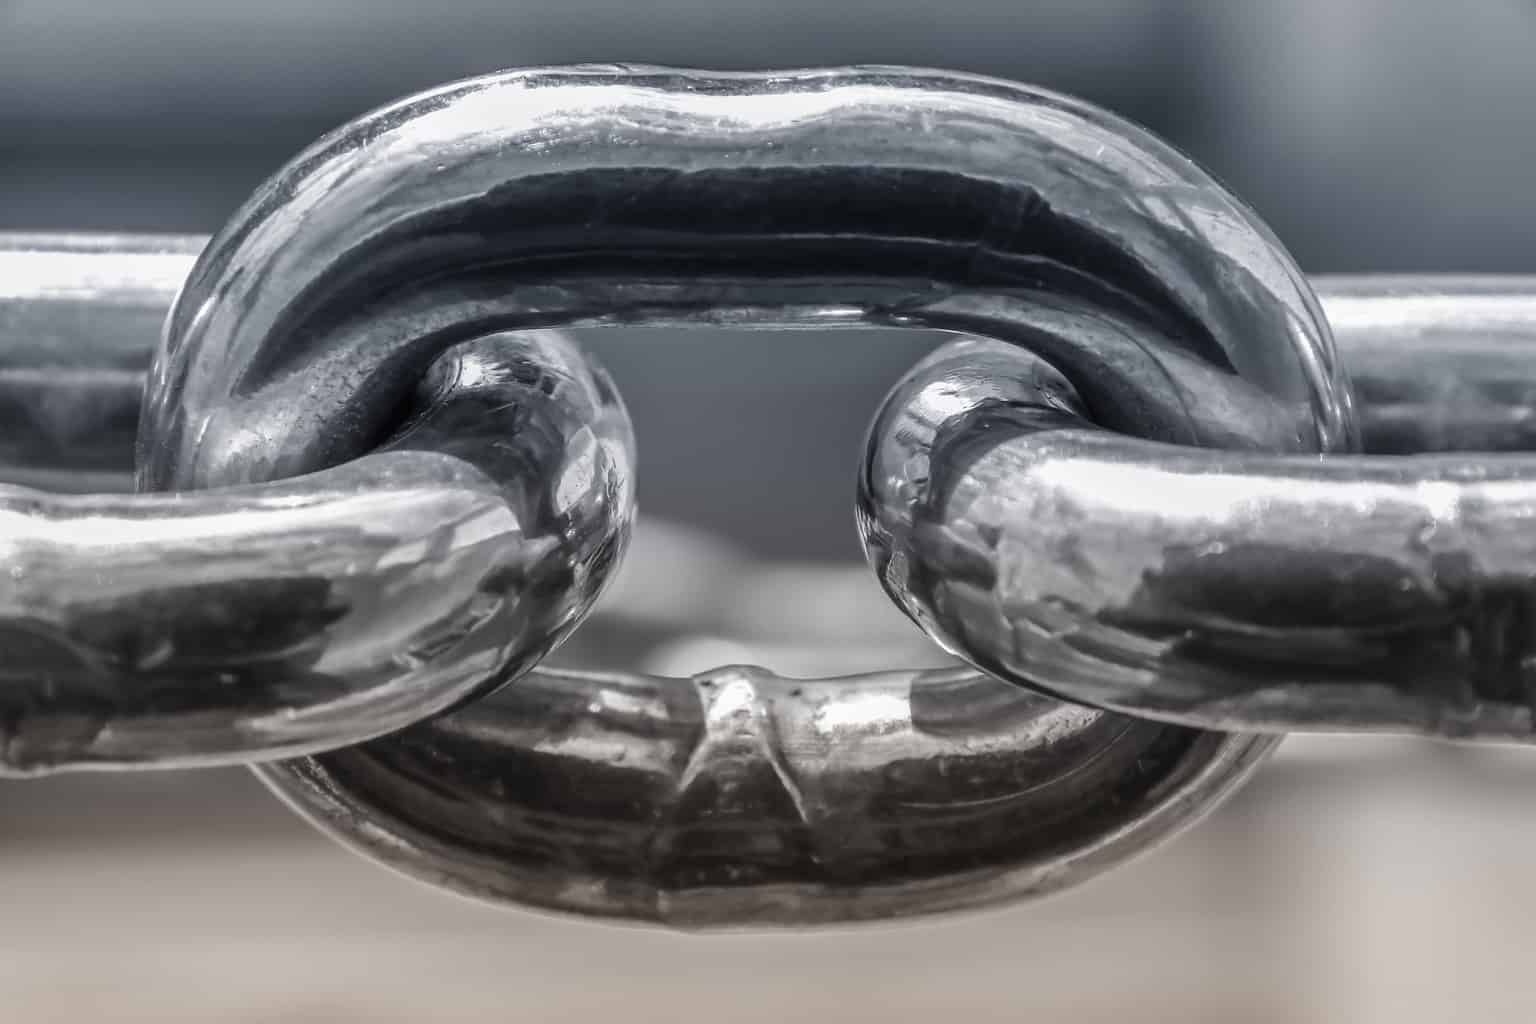 A single unit of a chain connected from each side